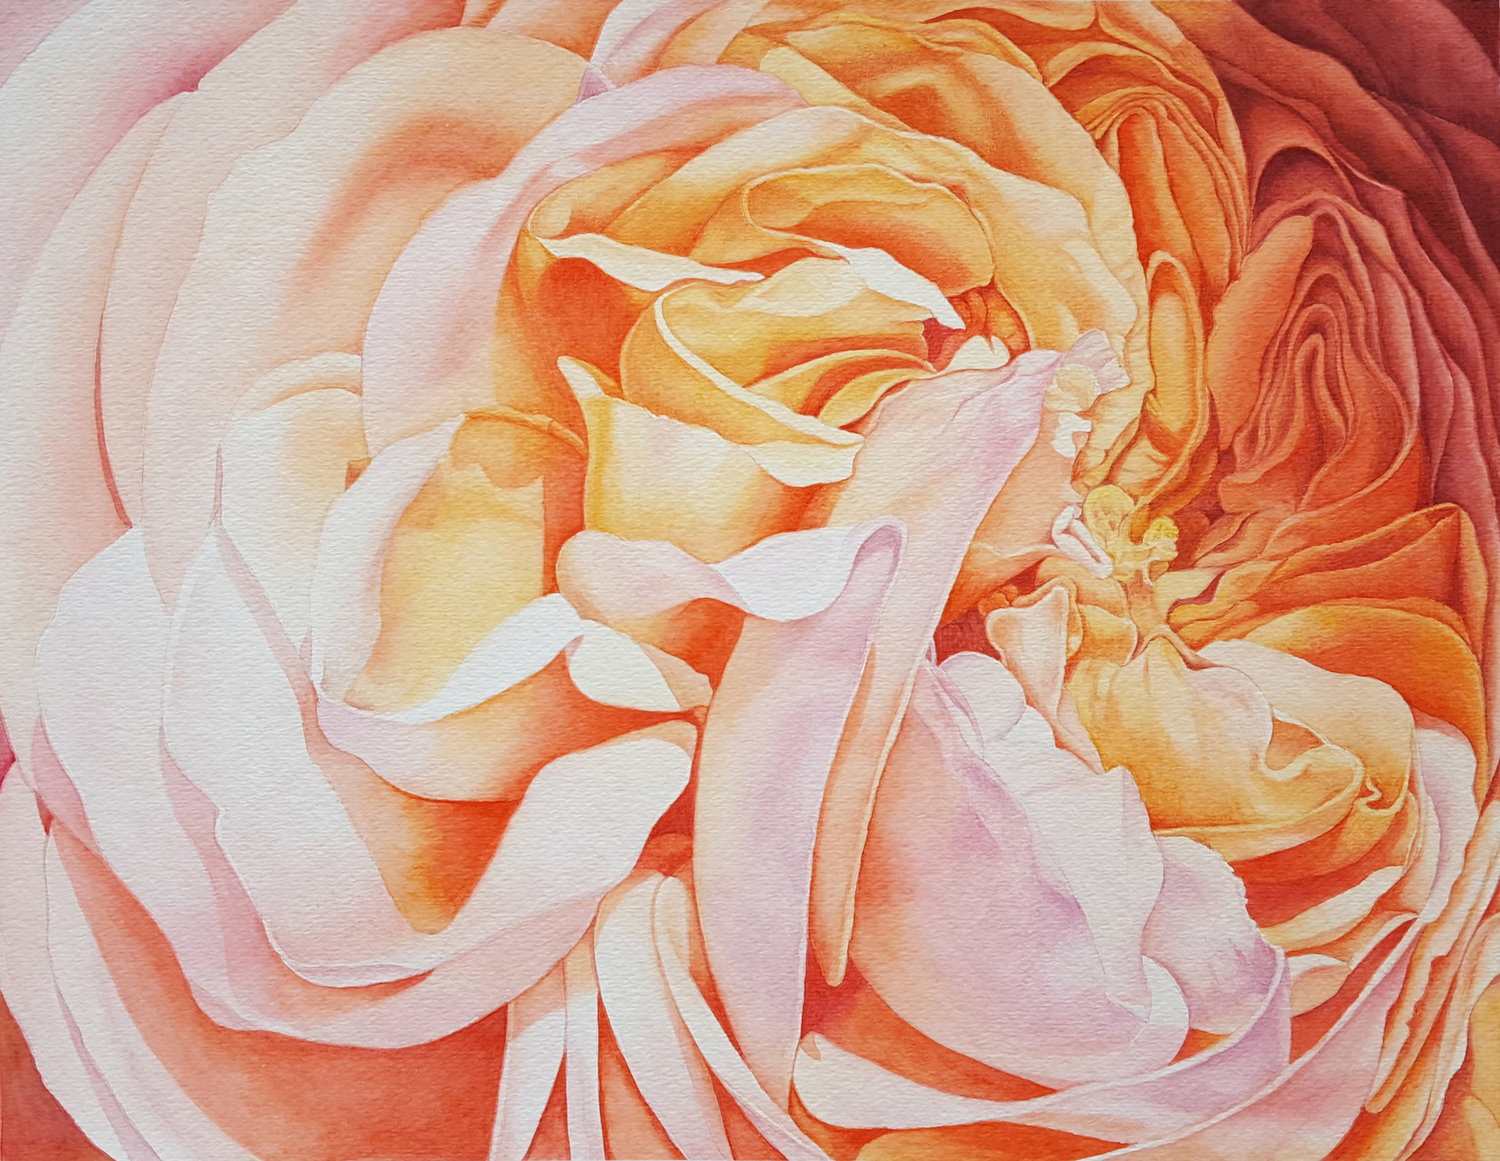 'Autumn Rose', Yan Ji, Watercolor on cold press watercolor paper, 25 x 33 cm